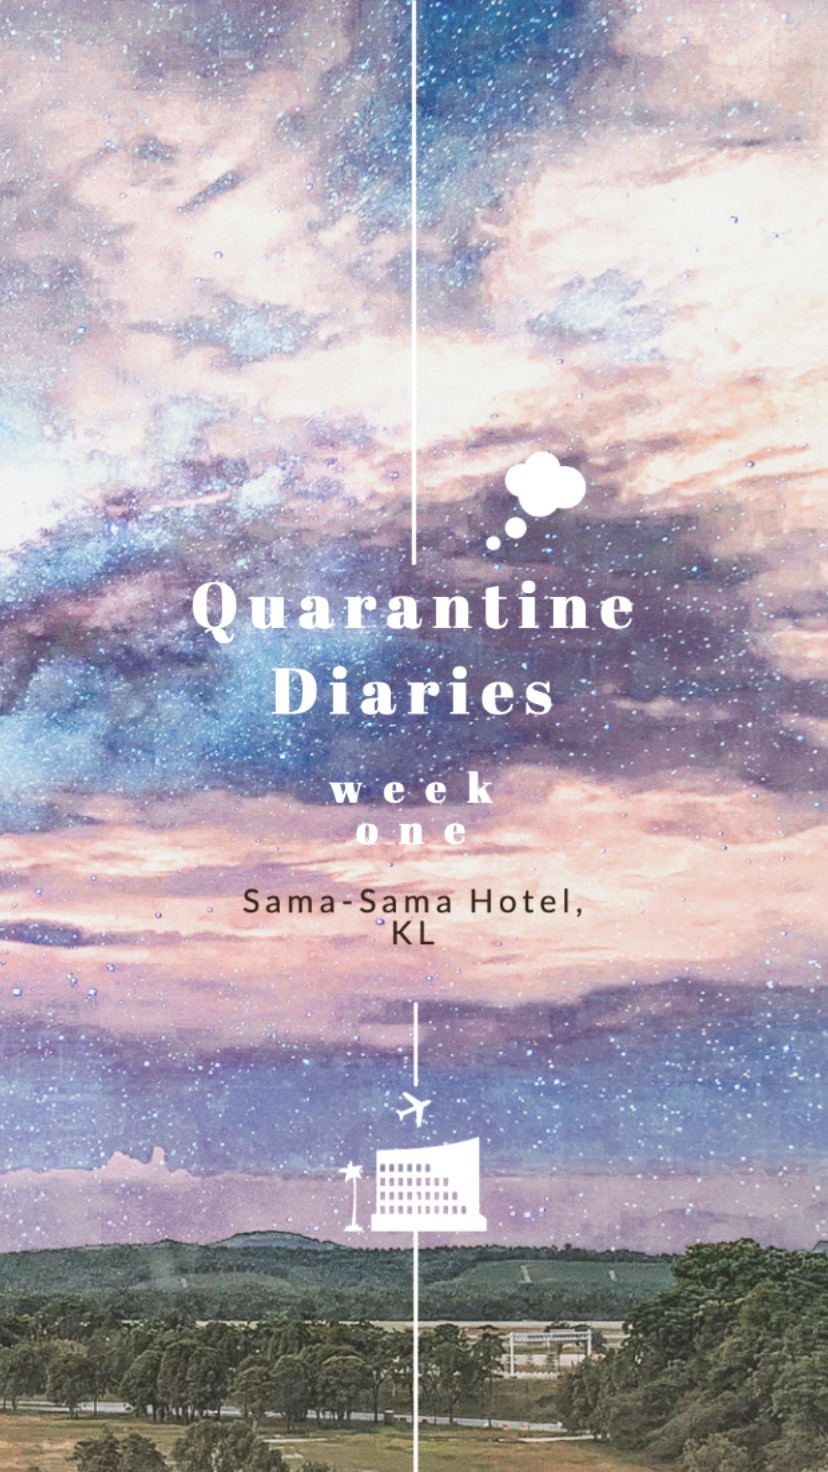 Rollingbear Travels blog/ abstract purple sky collage cover for Quarantine diaries part two in Sama-Sama Hotel, KL